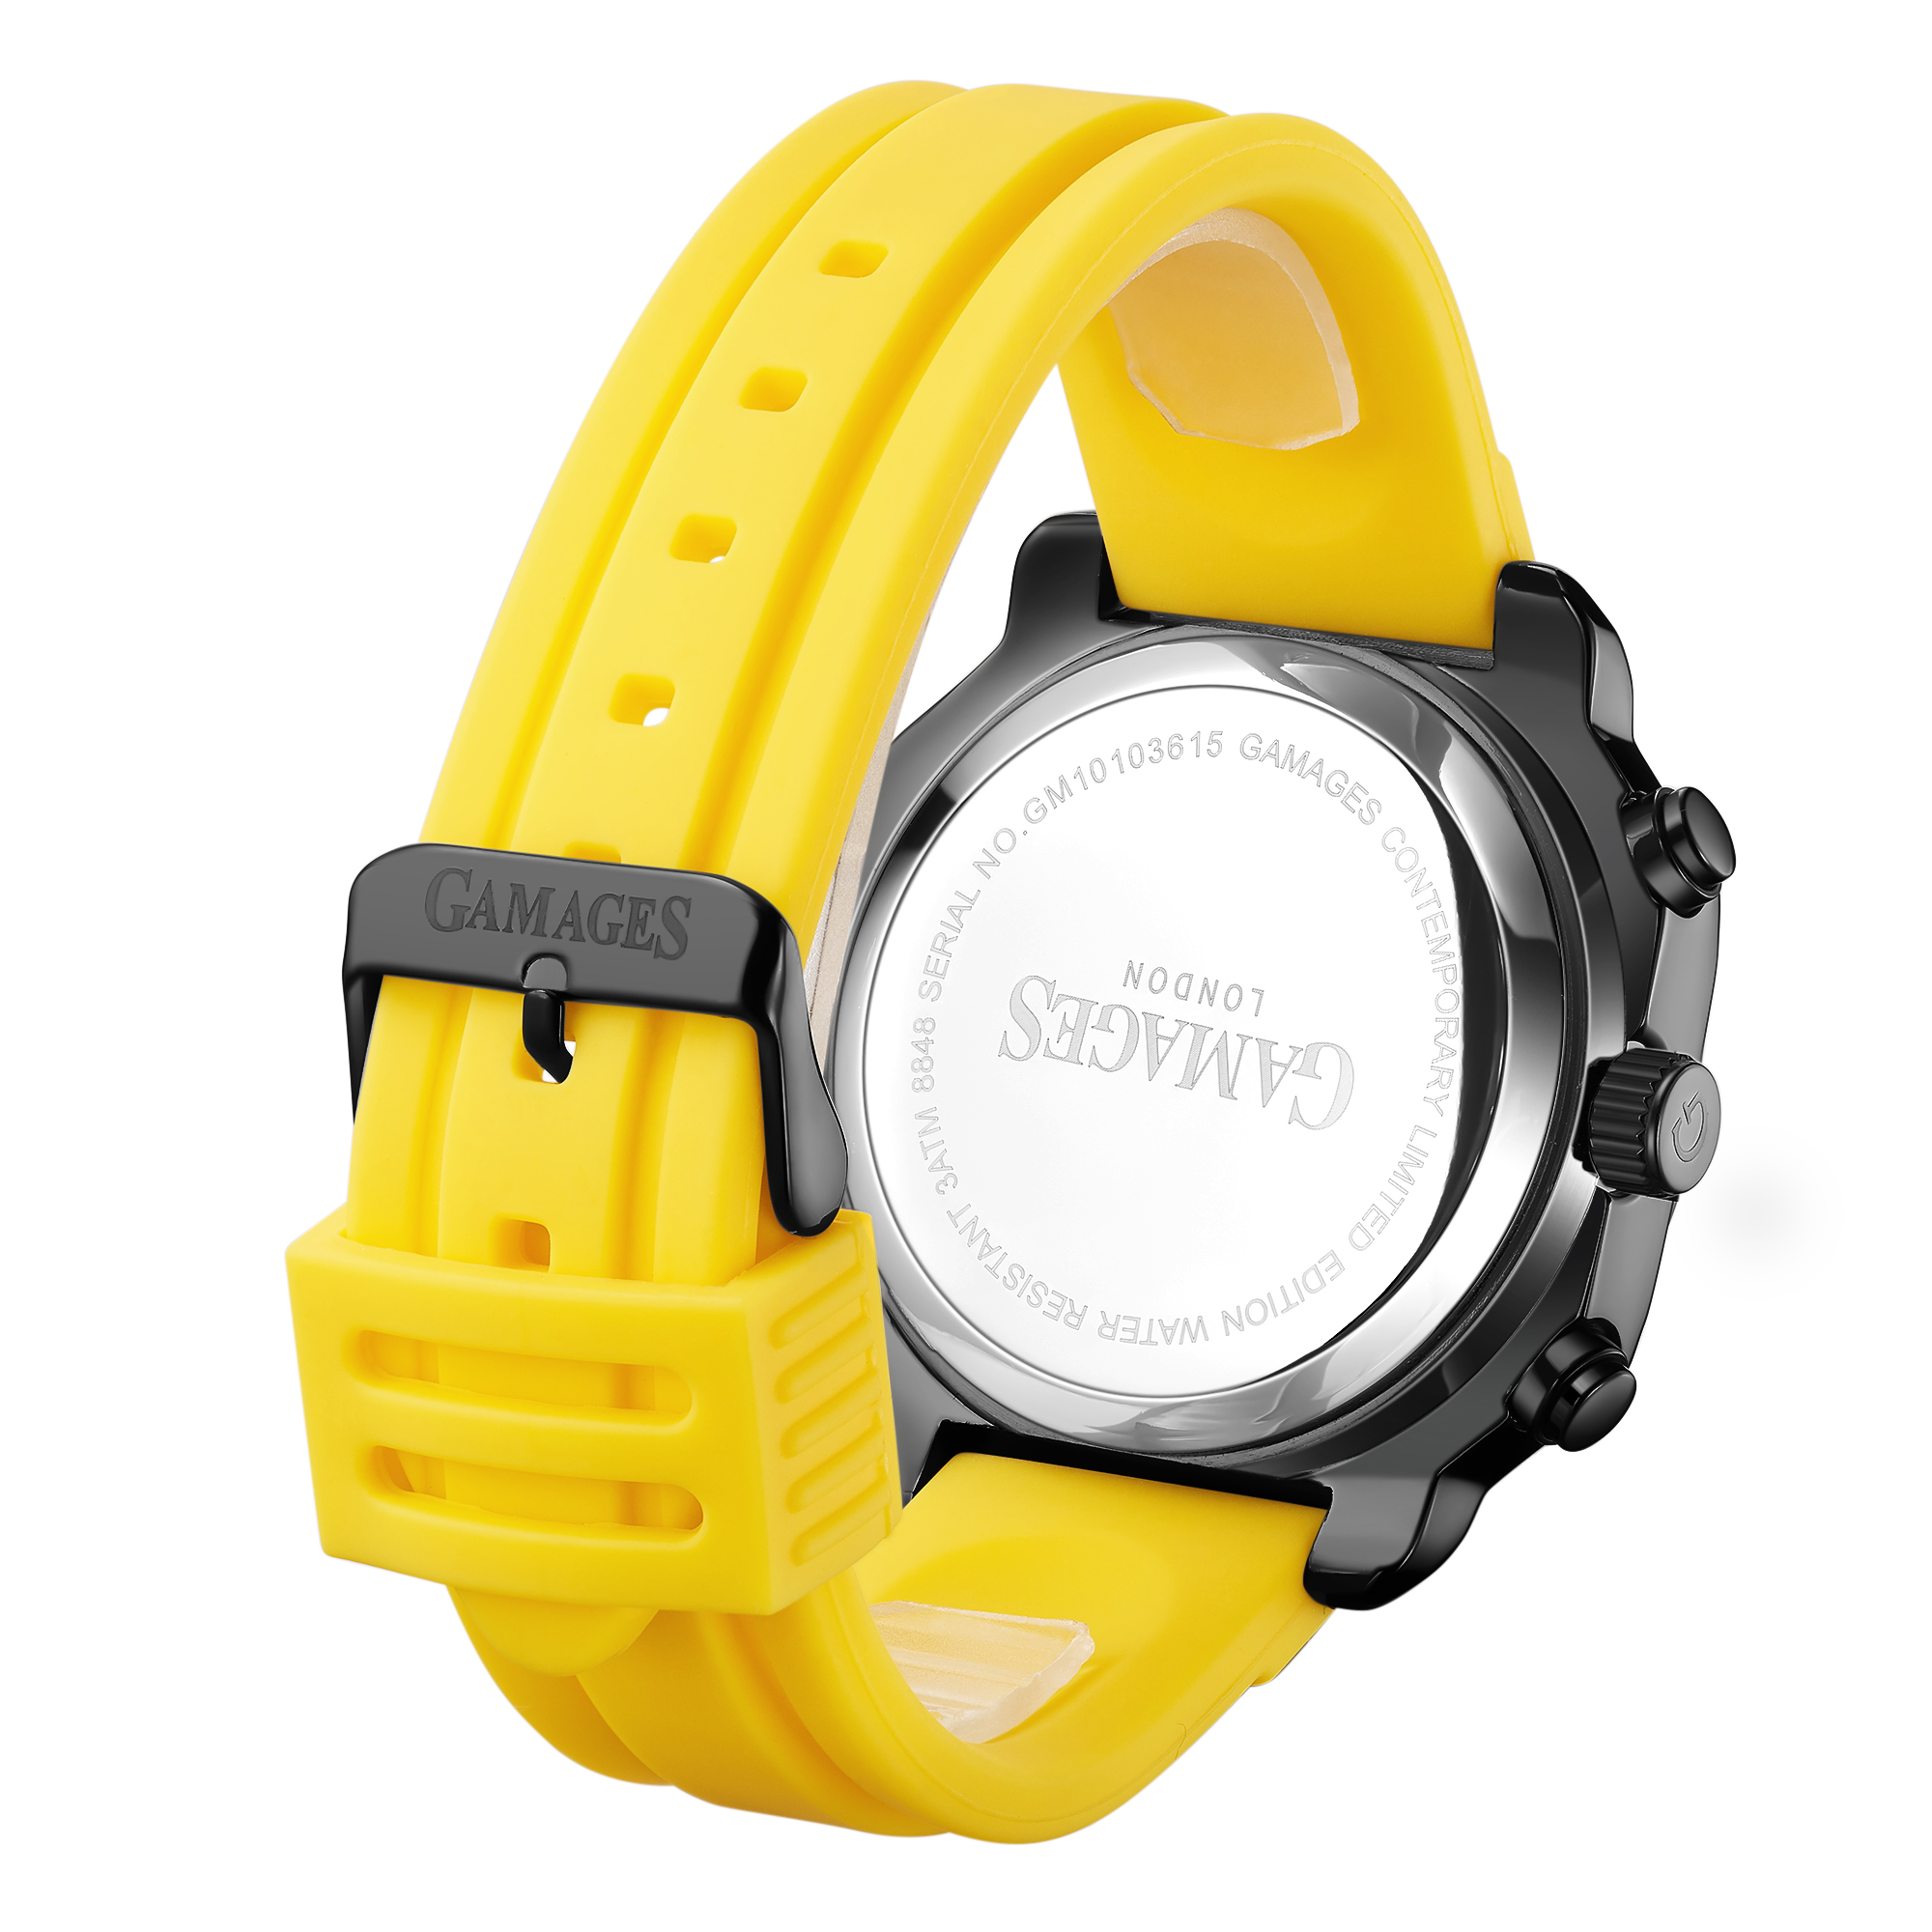 Ltd Edition Hand Assembled GAMAGES Contemporary Automatic Yellow – 5 Year Warranty & Free Delivery - Image 2 of 5